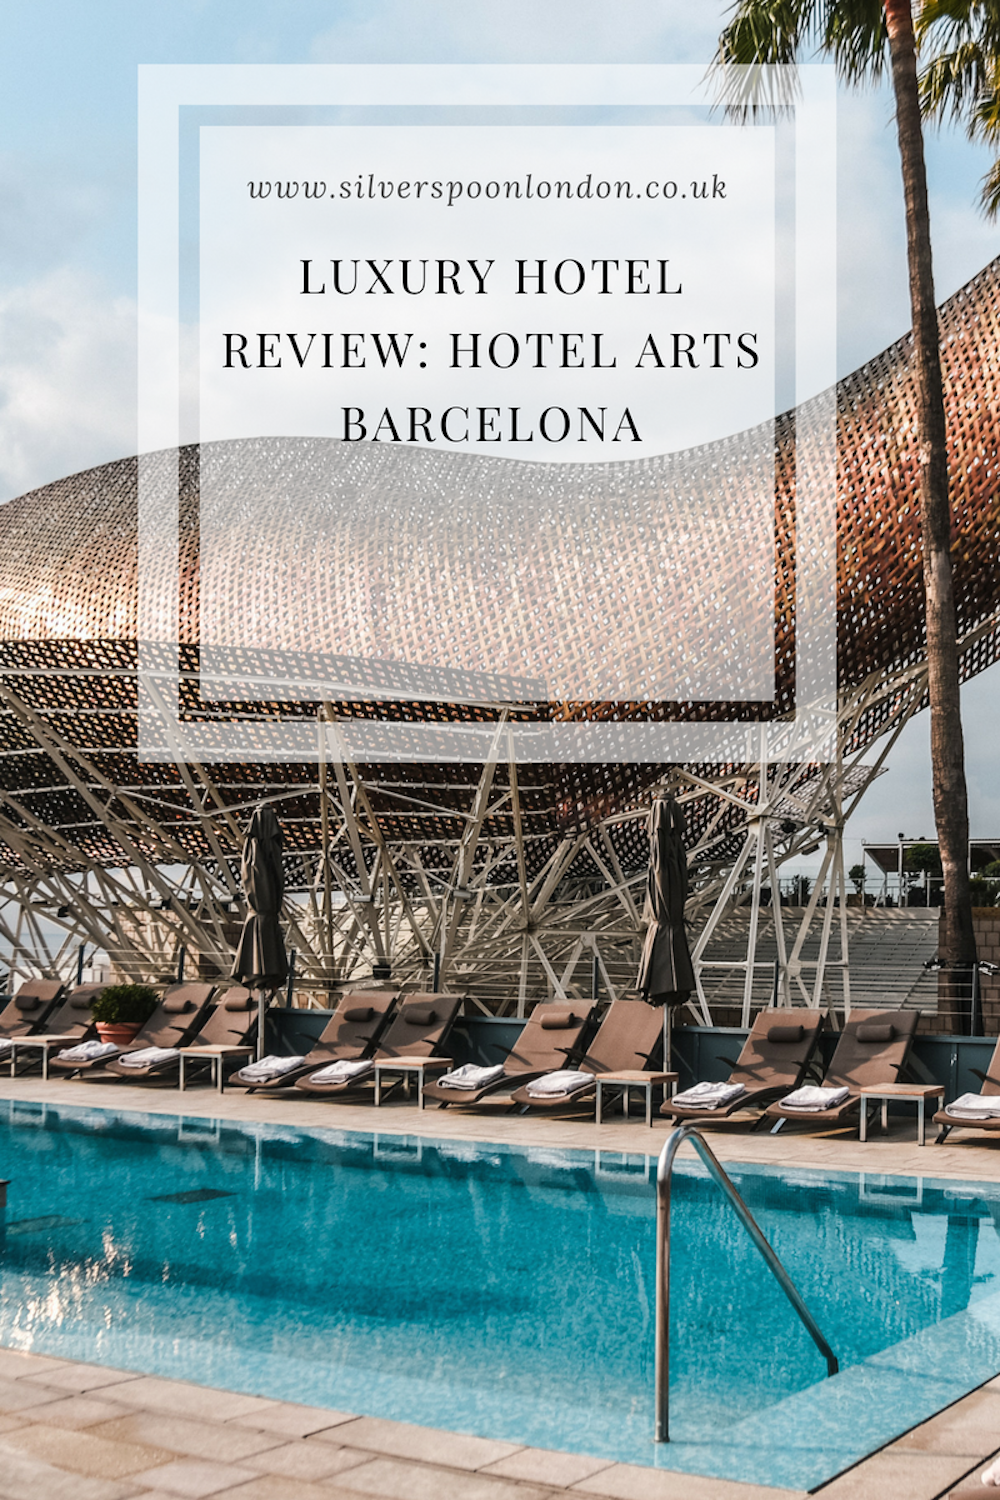 Luxury Hotel Review: Hotel Arts Barcelona